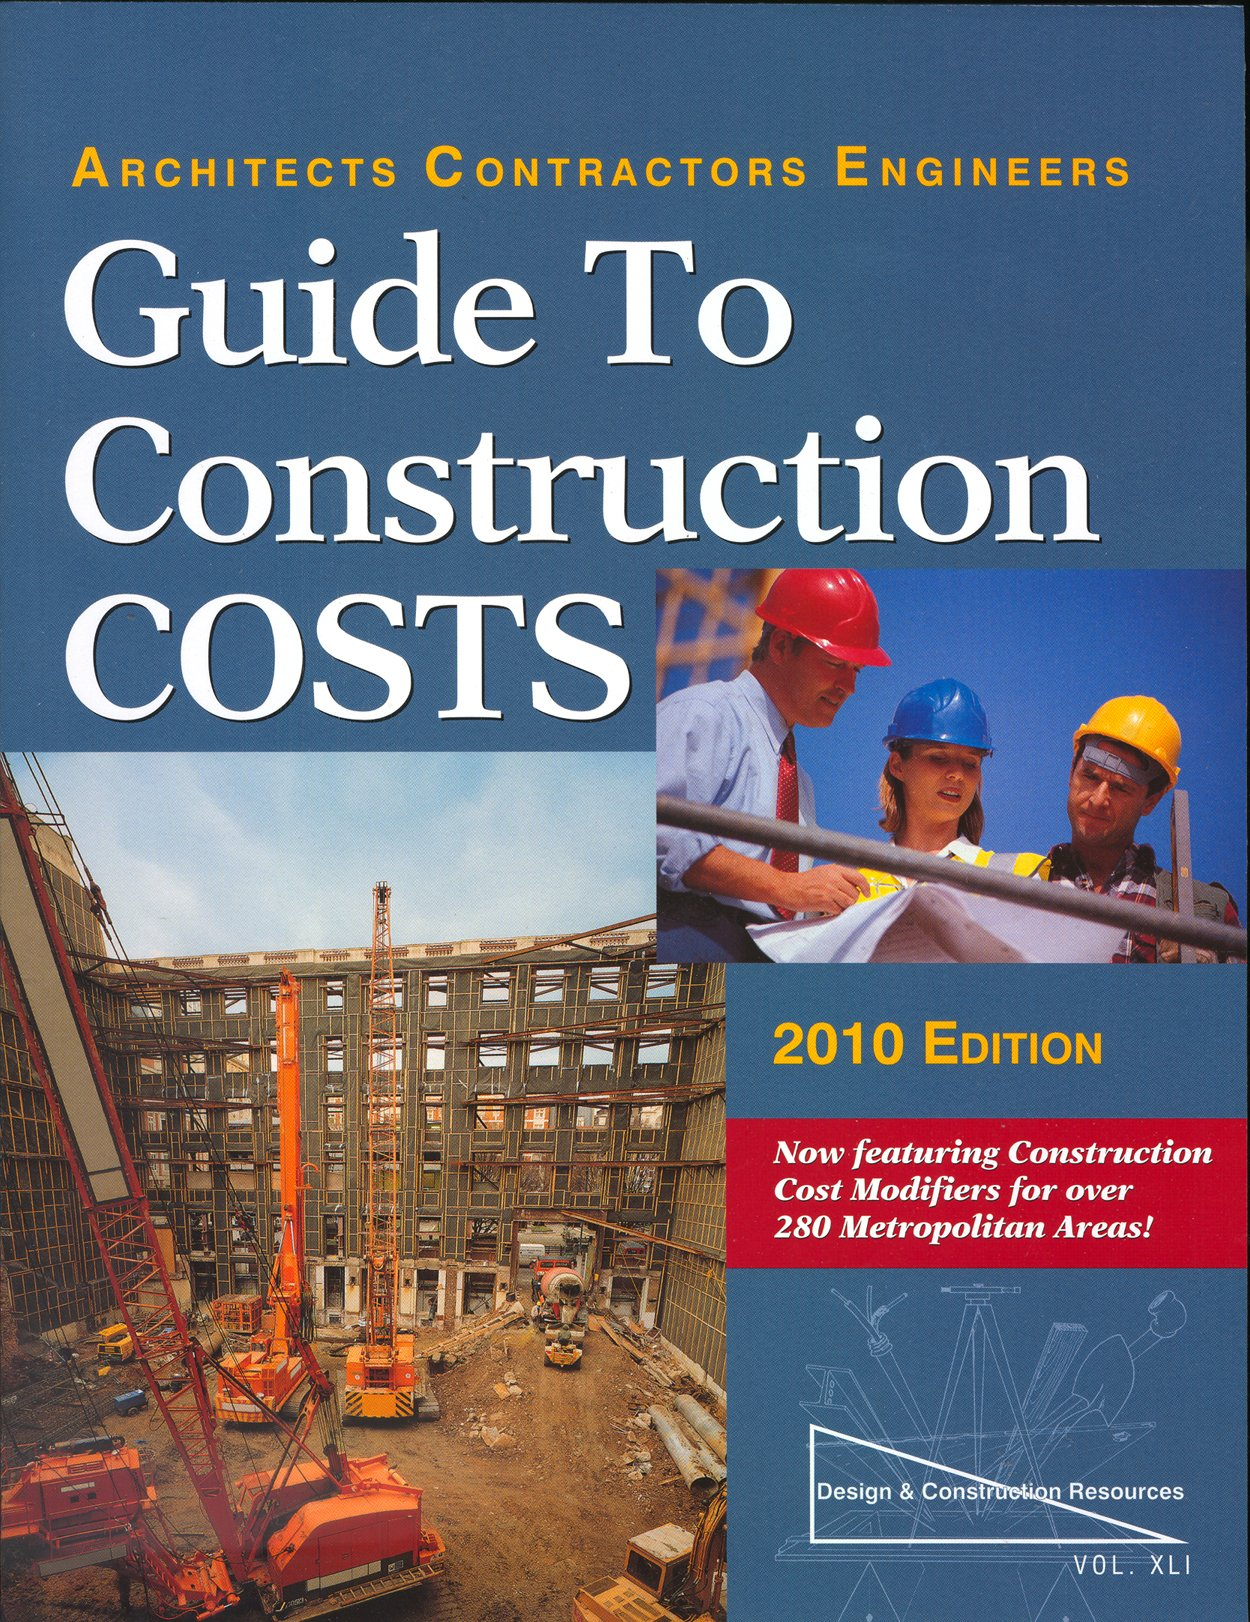 Architects Contractors Engineers Guide to Construction Costs 2010 Edition